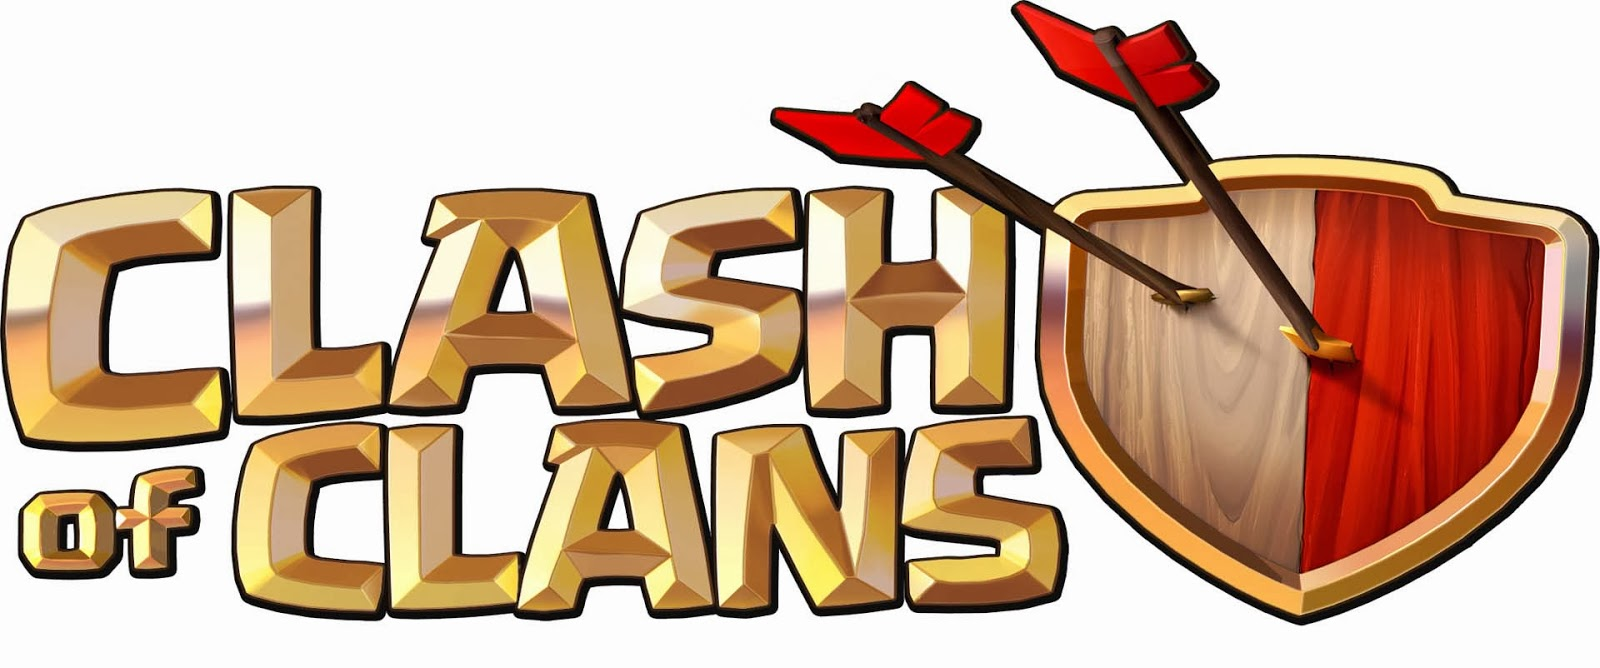 Clash of Clans Title